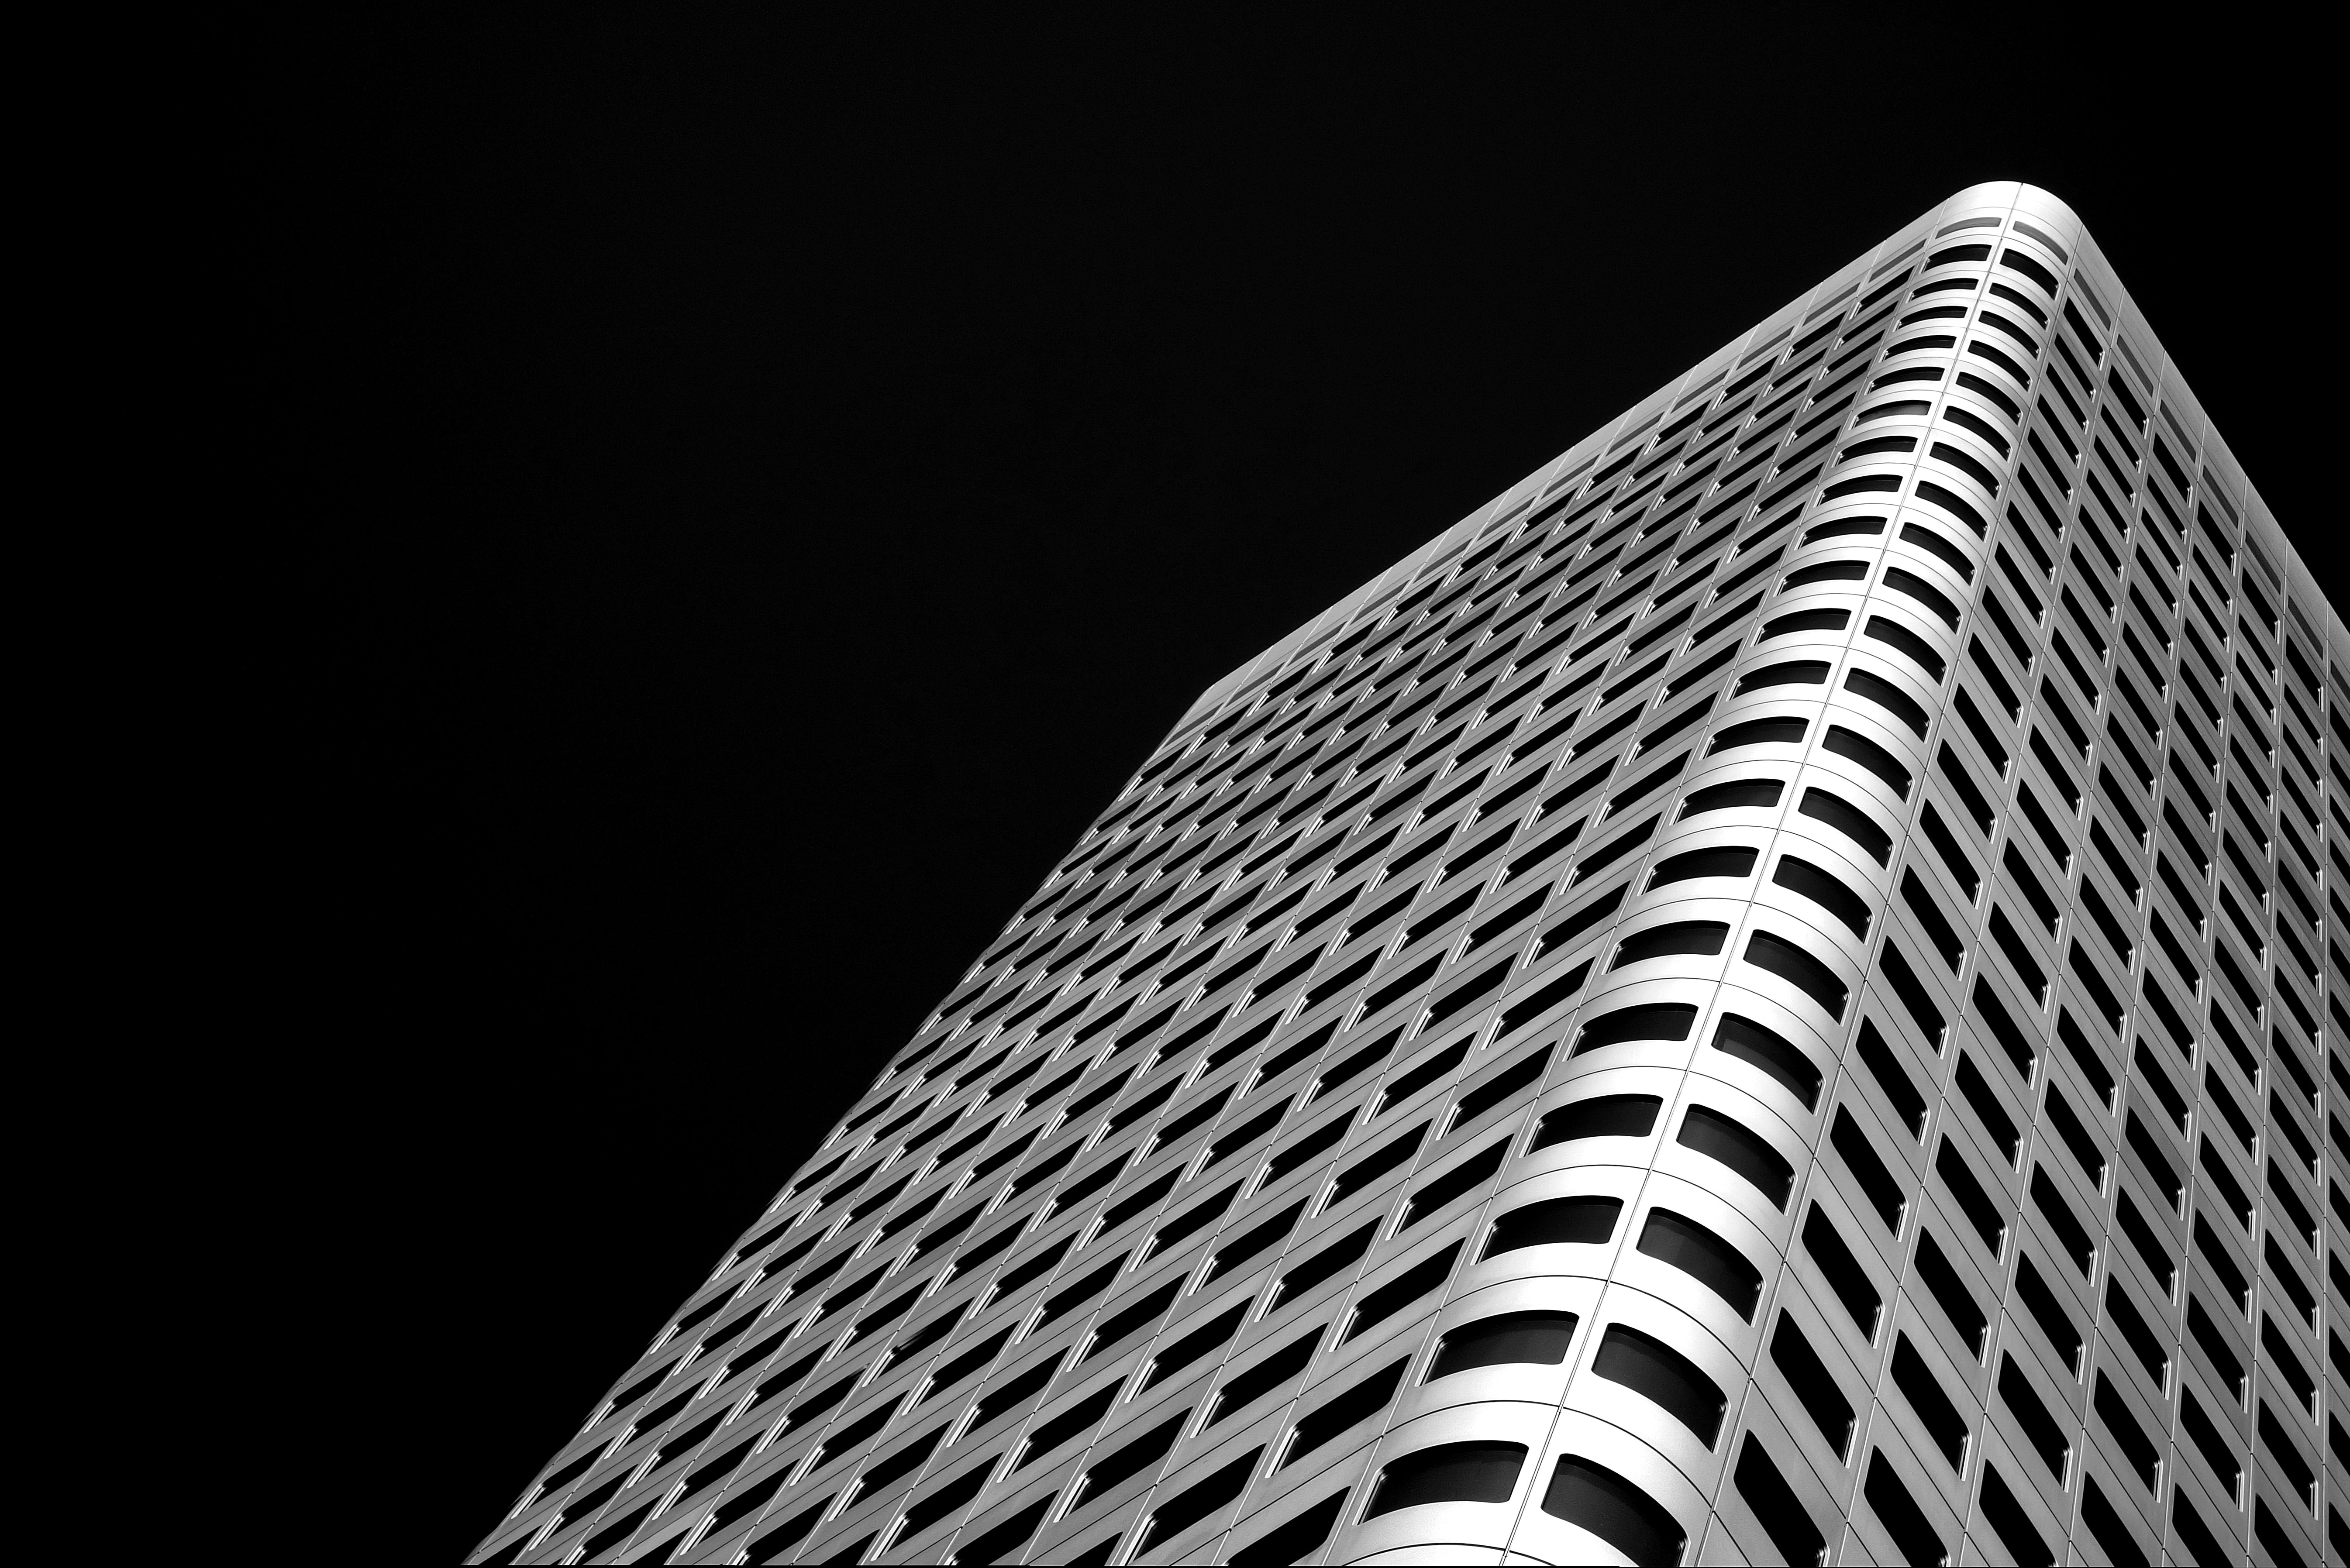 A desaturated shot of a modern office building with rounded corners in Frankfurt